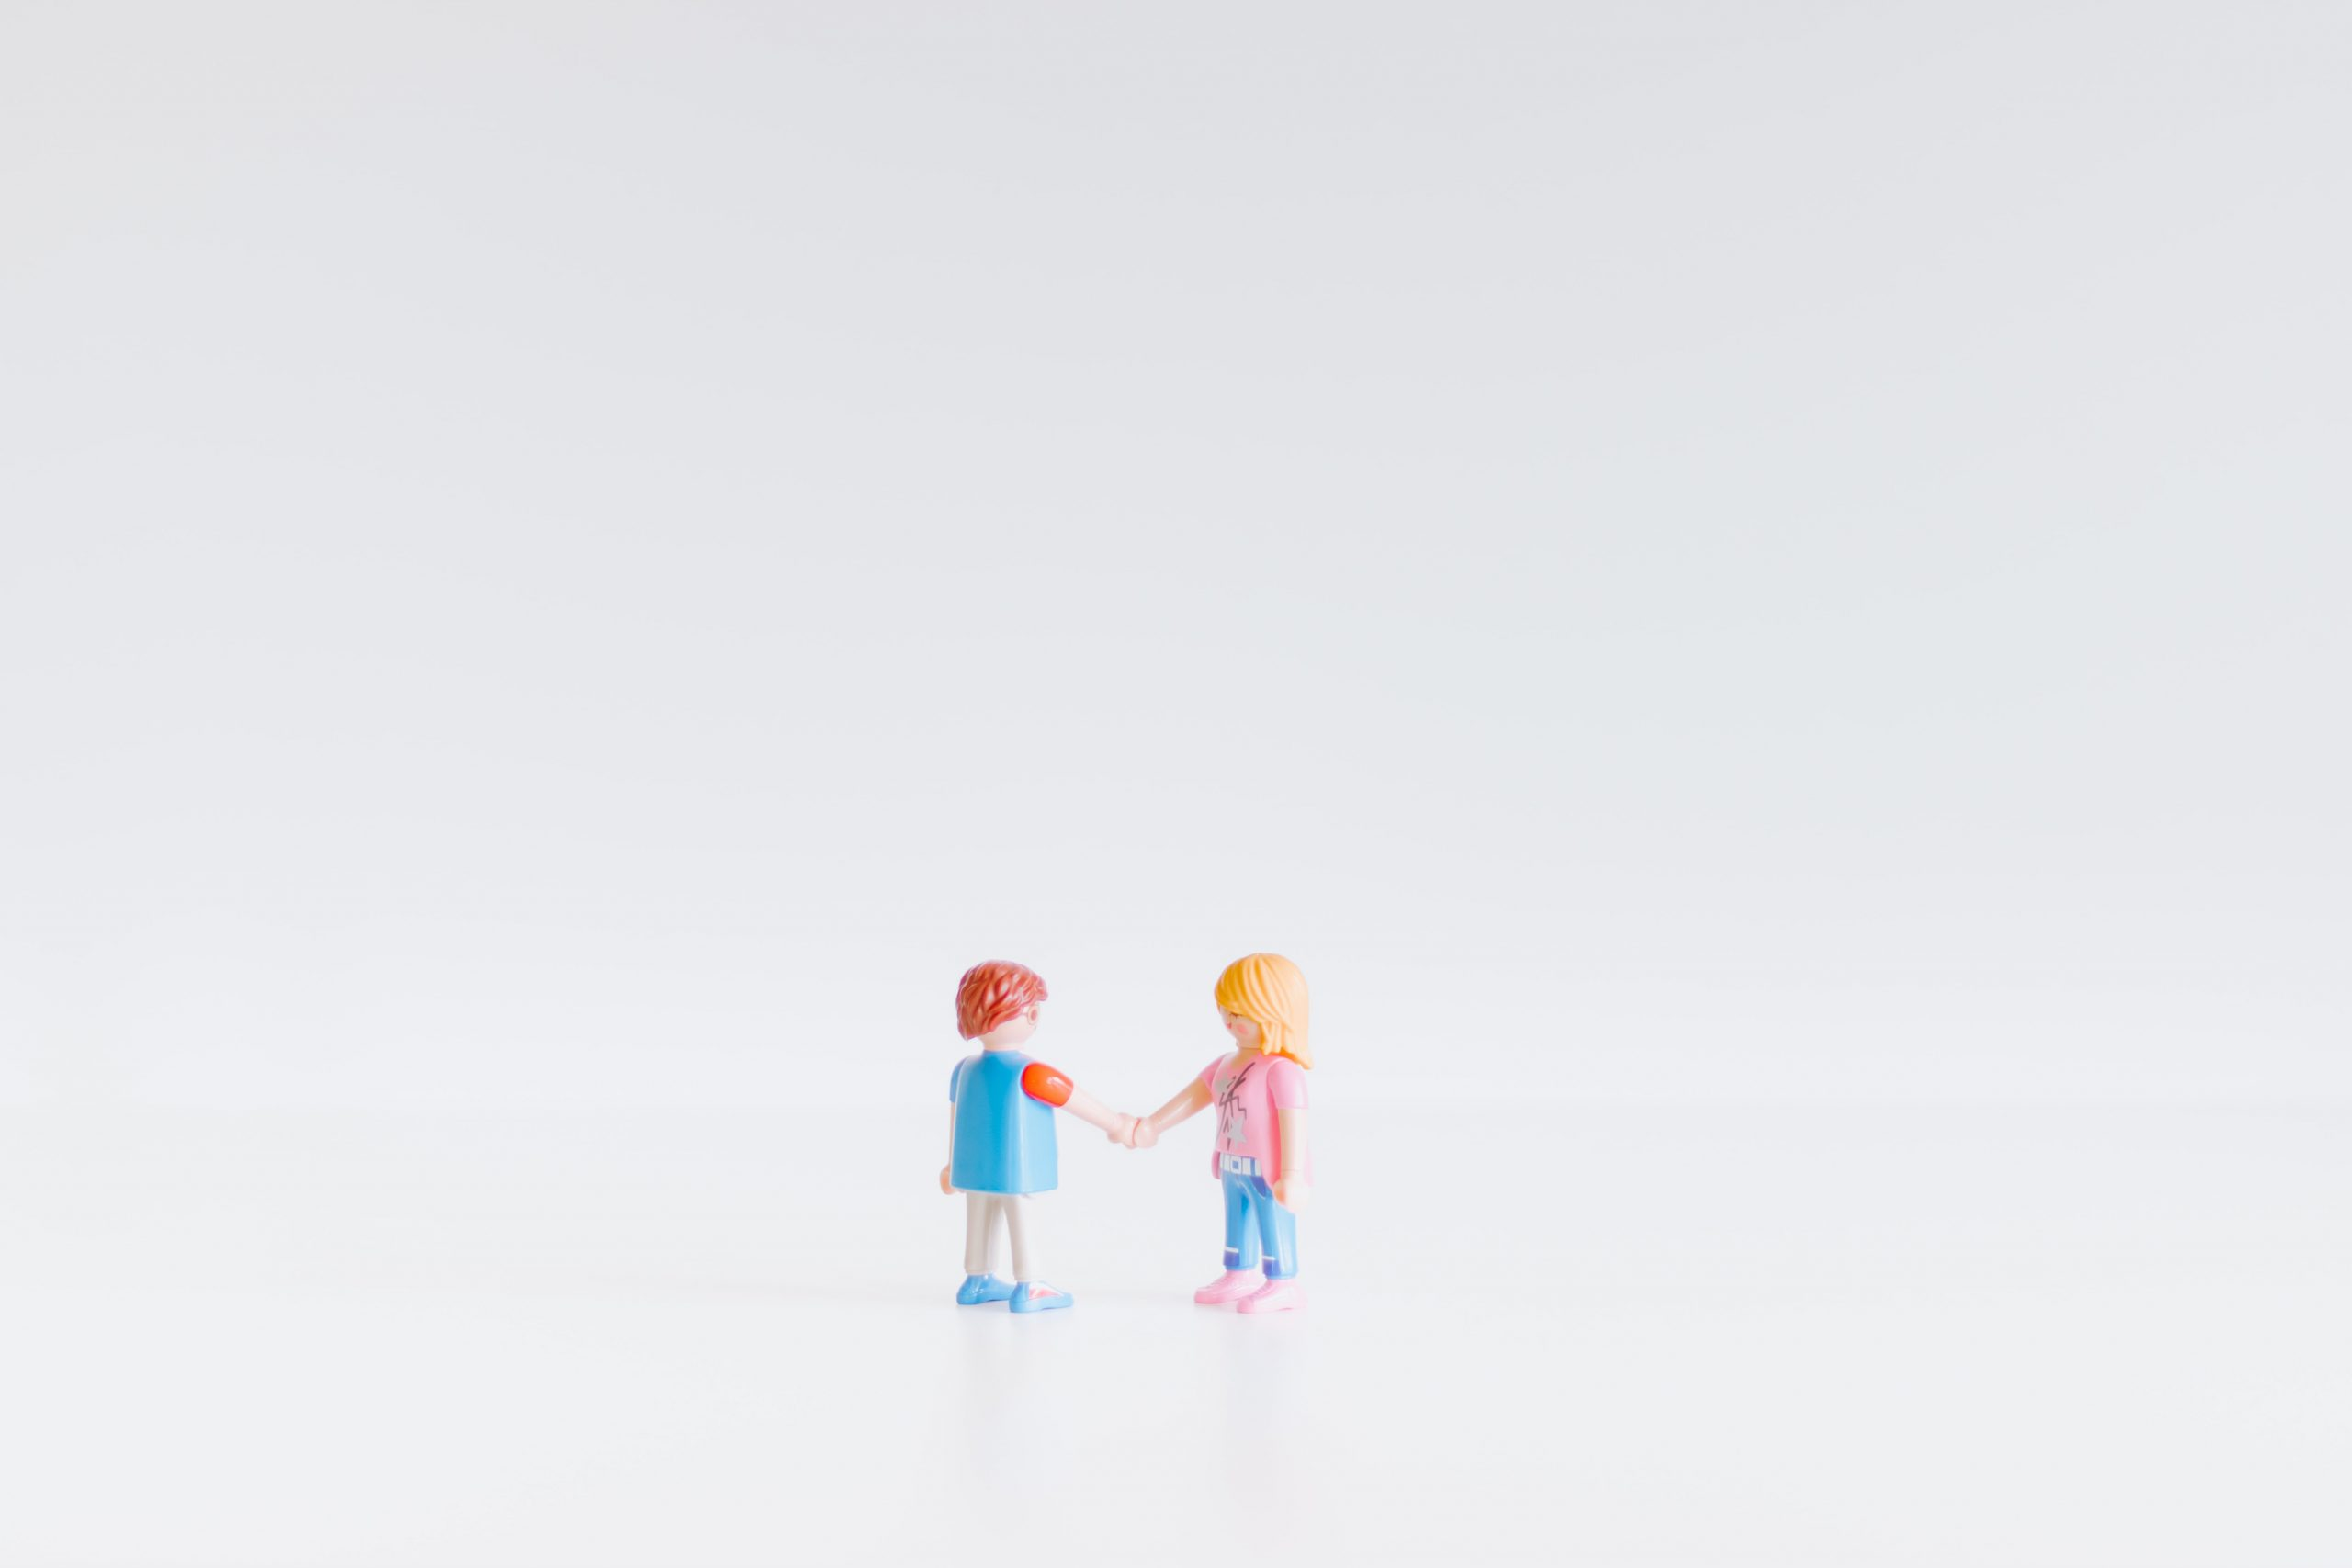 Small toys shaking hands.